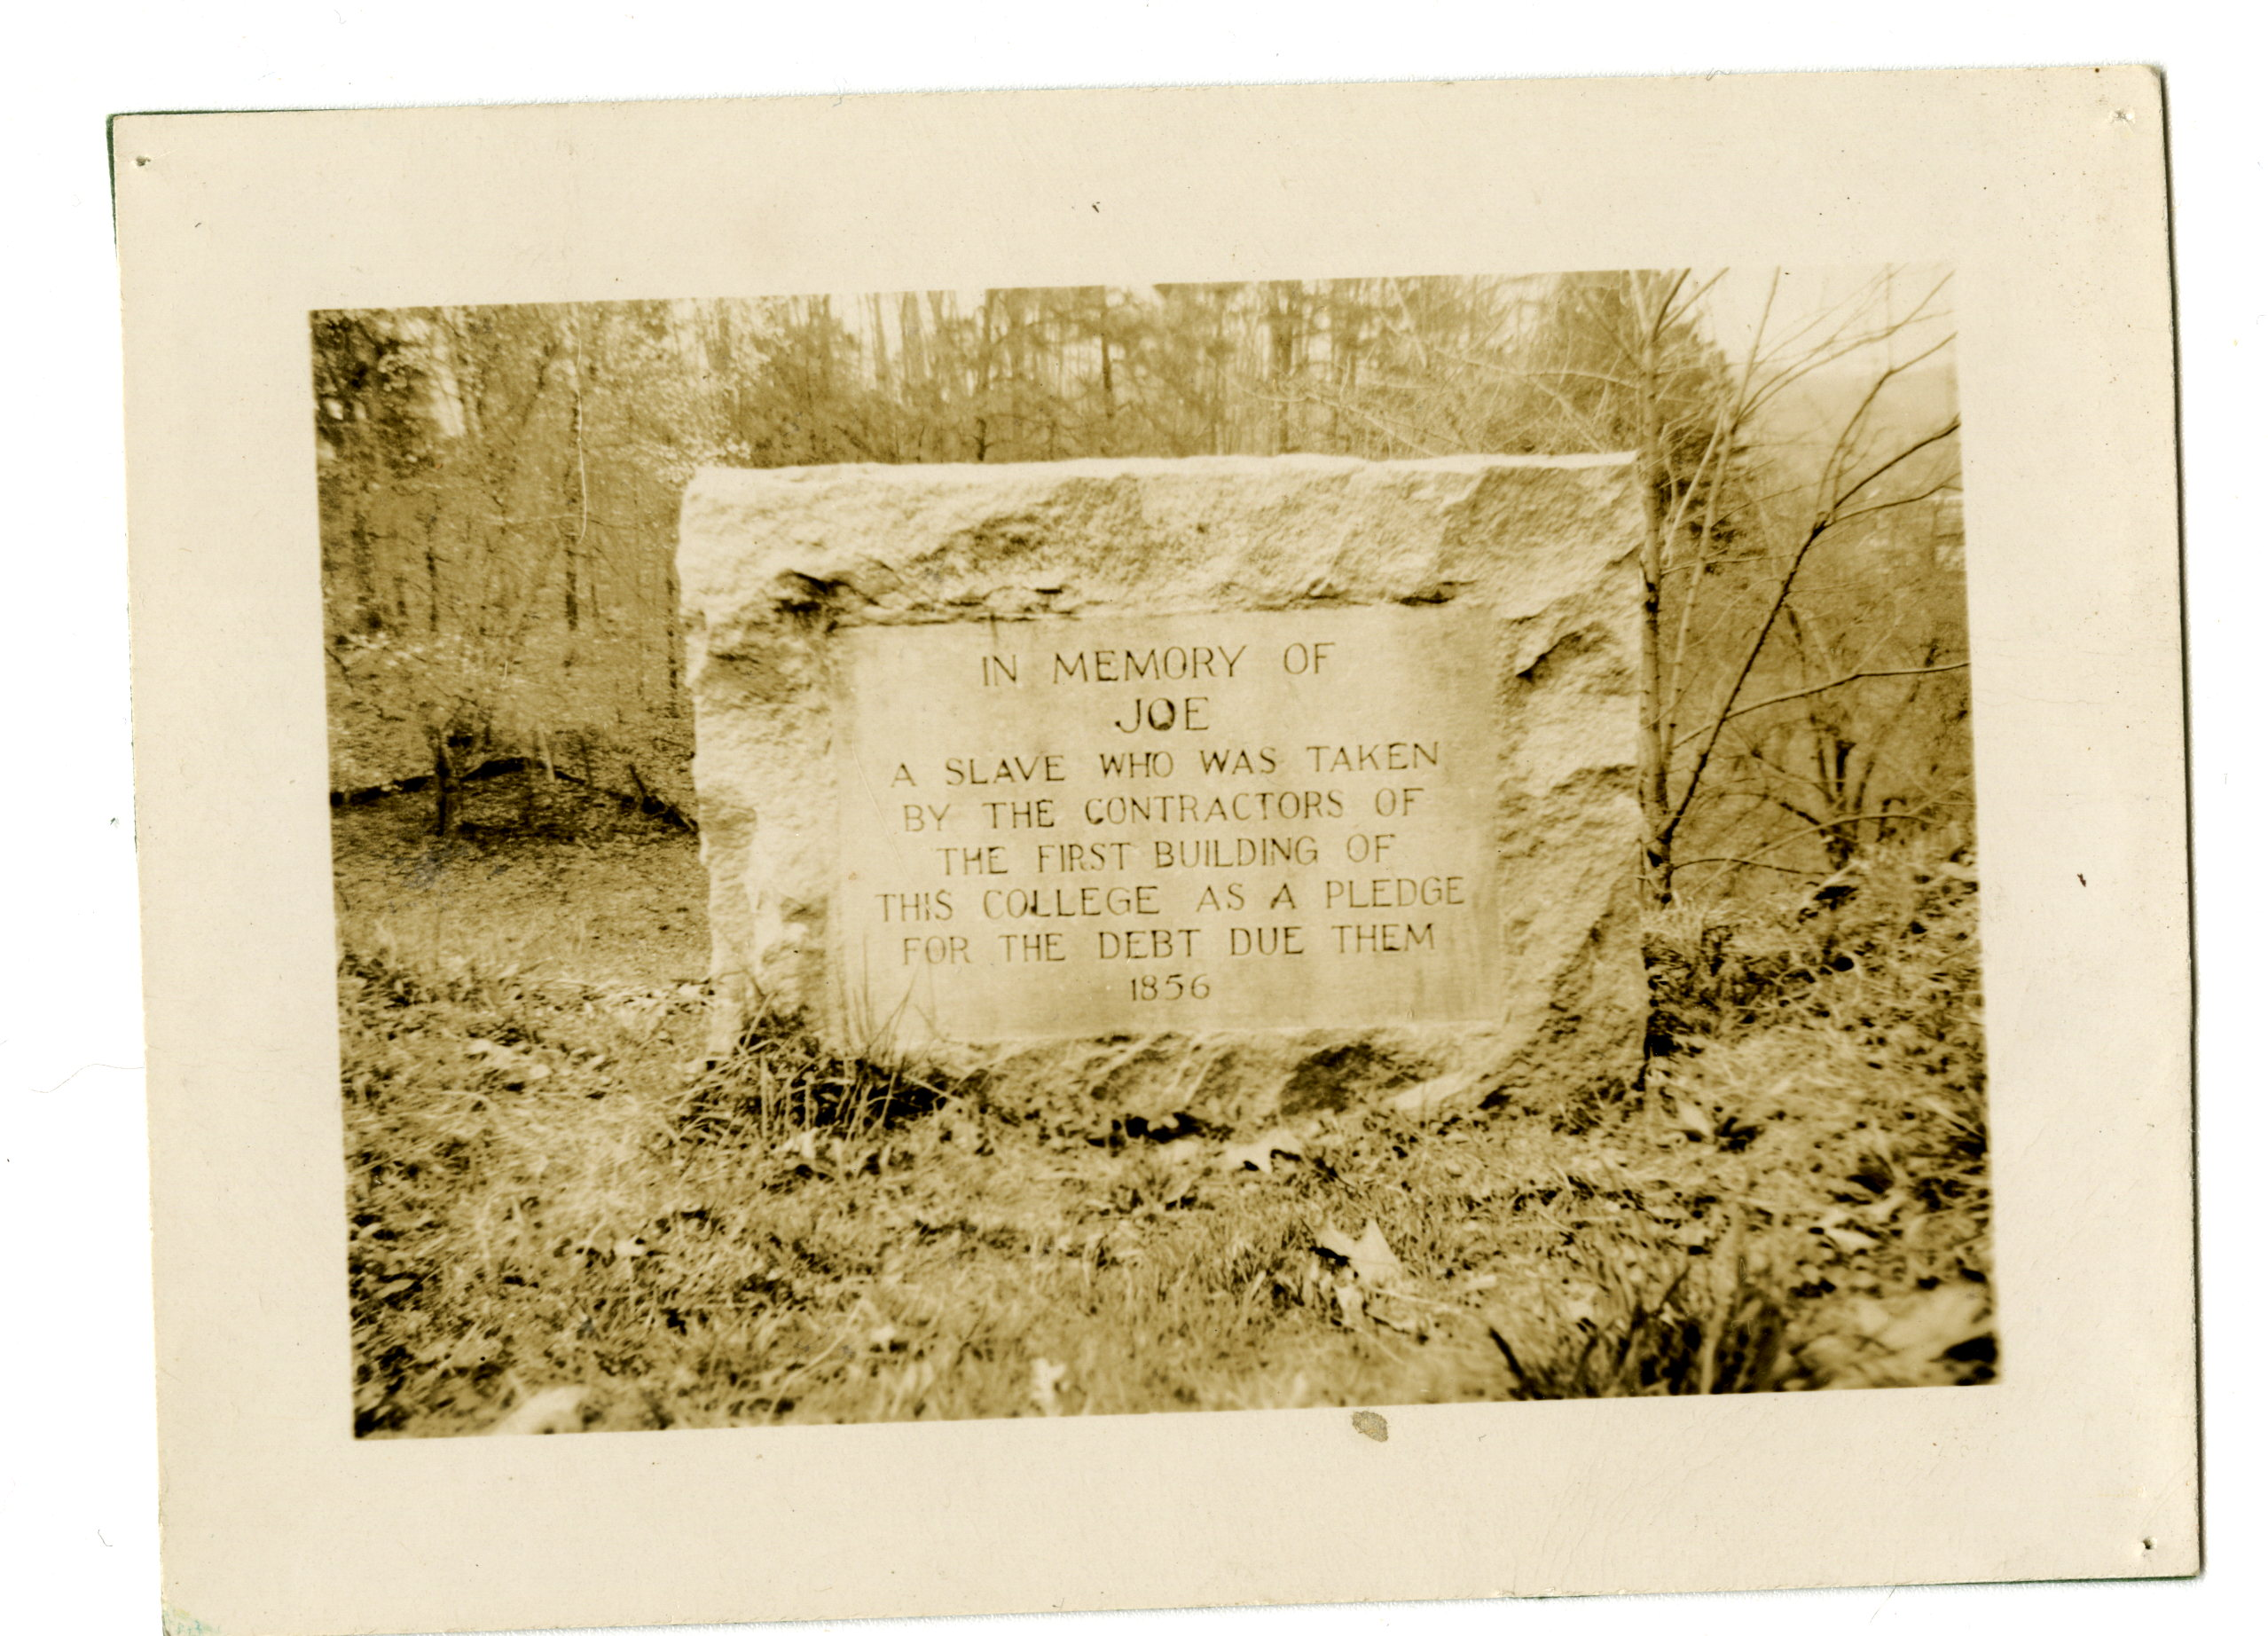 The Joe Anderson Memorial at Mars Hill University in 1932. Courtesy of The Southern Appalachian Archives.